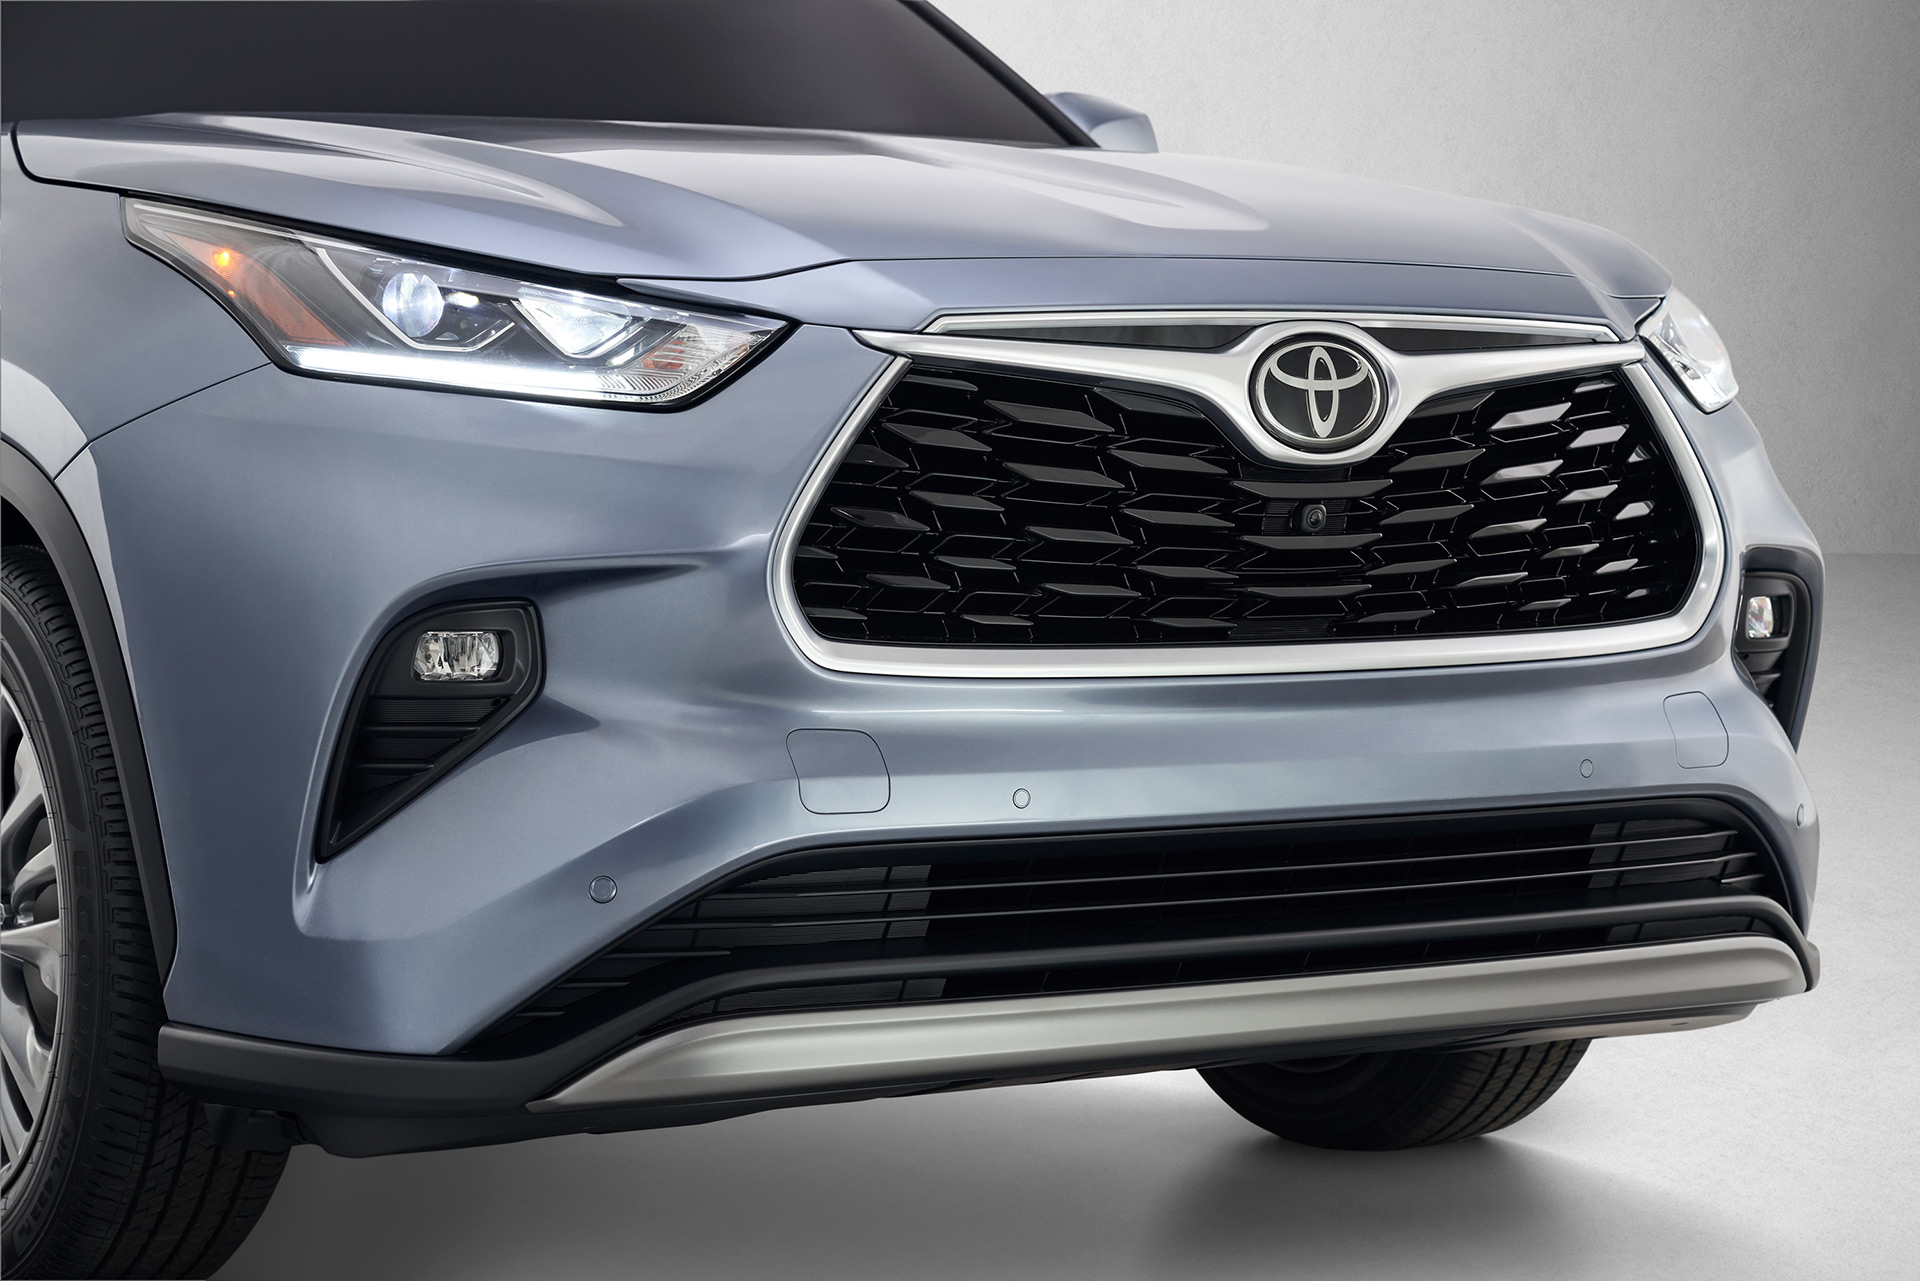 World Premiere of All-New 2020 Highlander at New York